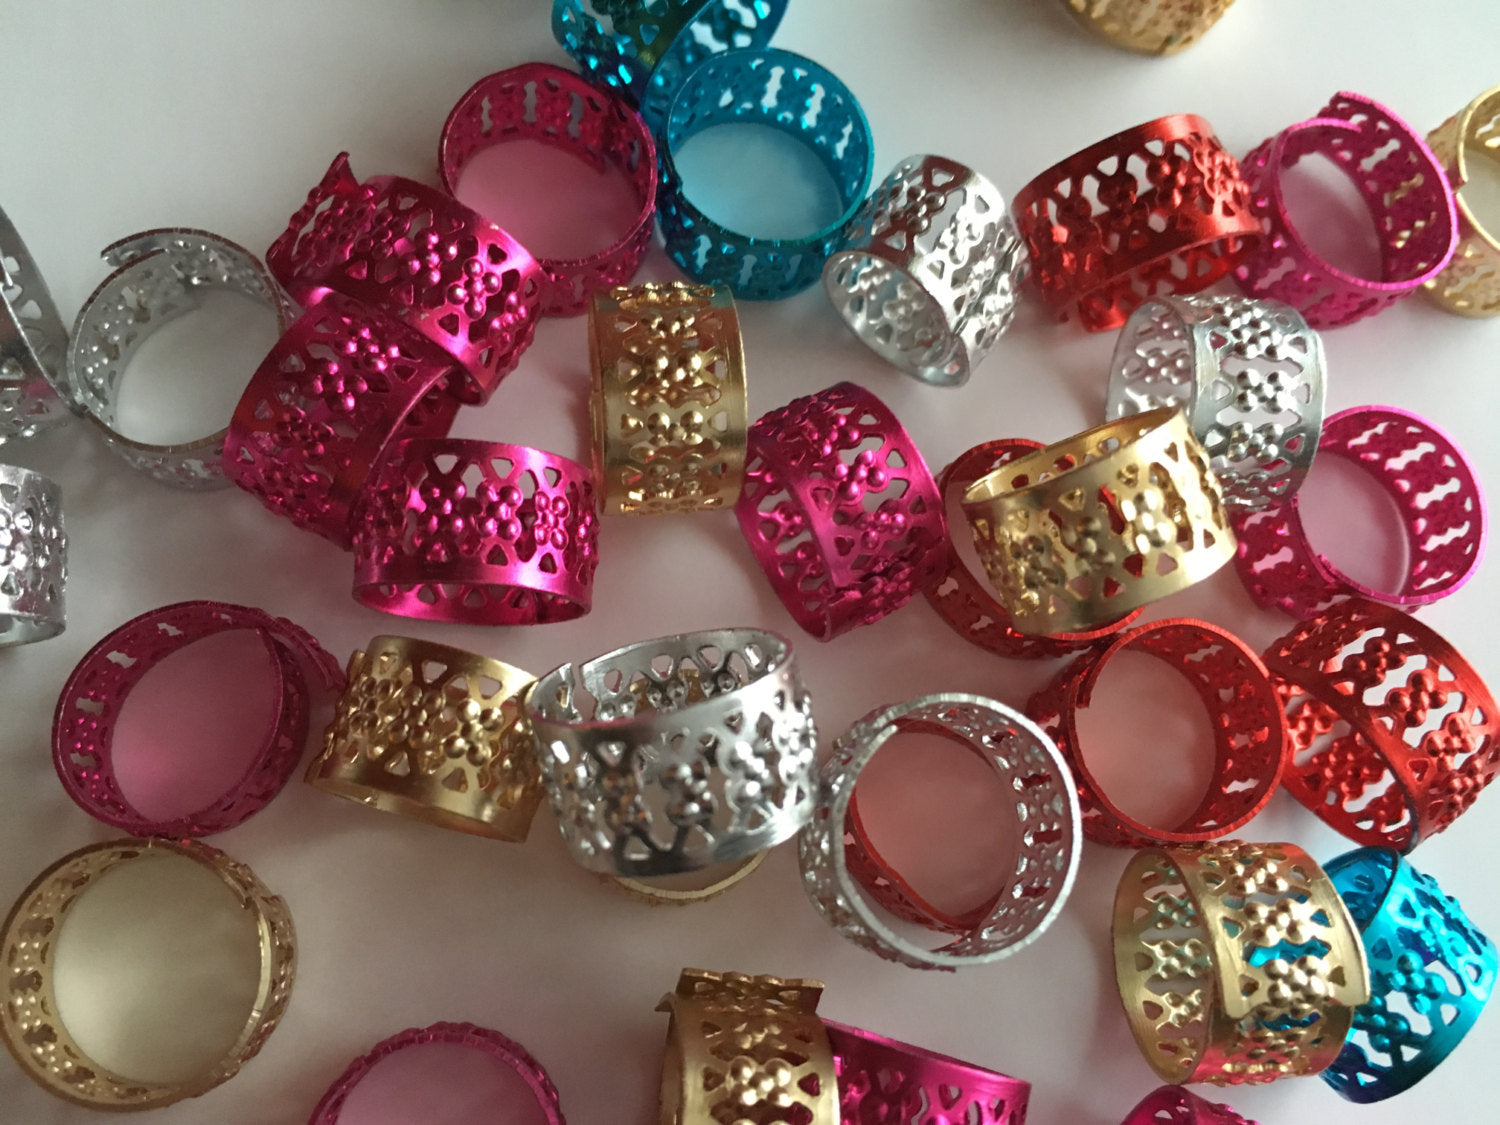 Dread Cuffs Jewelry Dreadlock Hair Beads Gold Silver Blue Purple Pink Red Aluminum Filigree